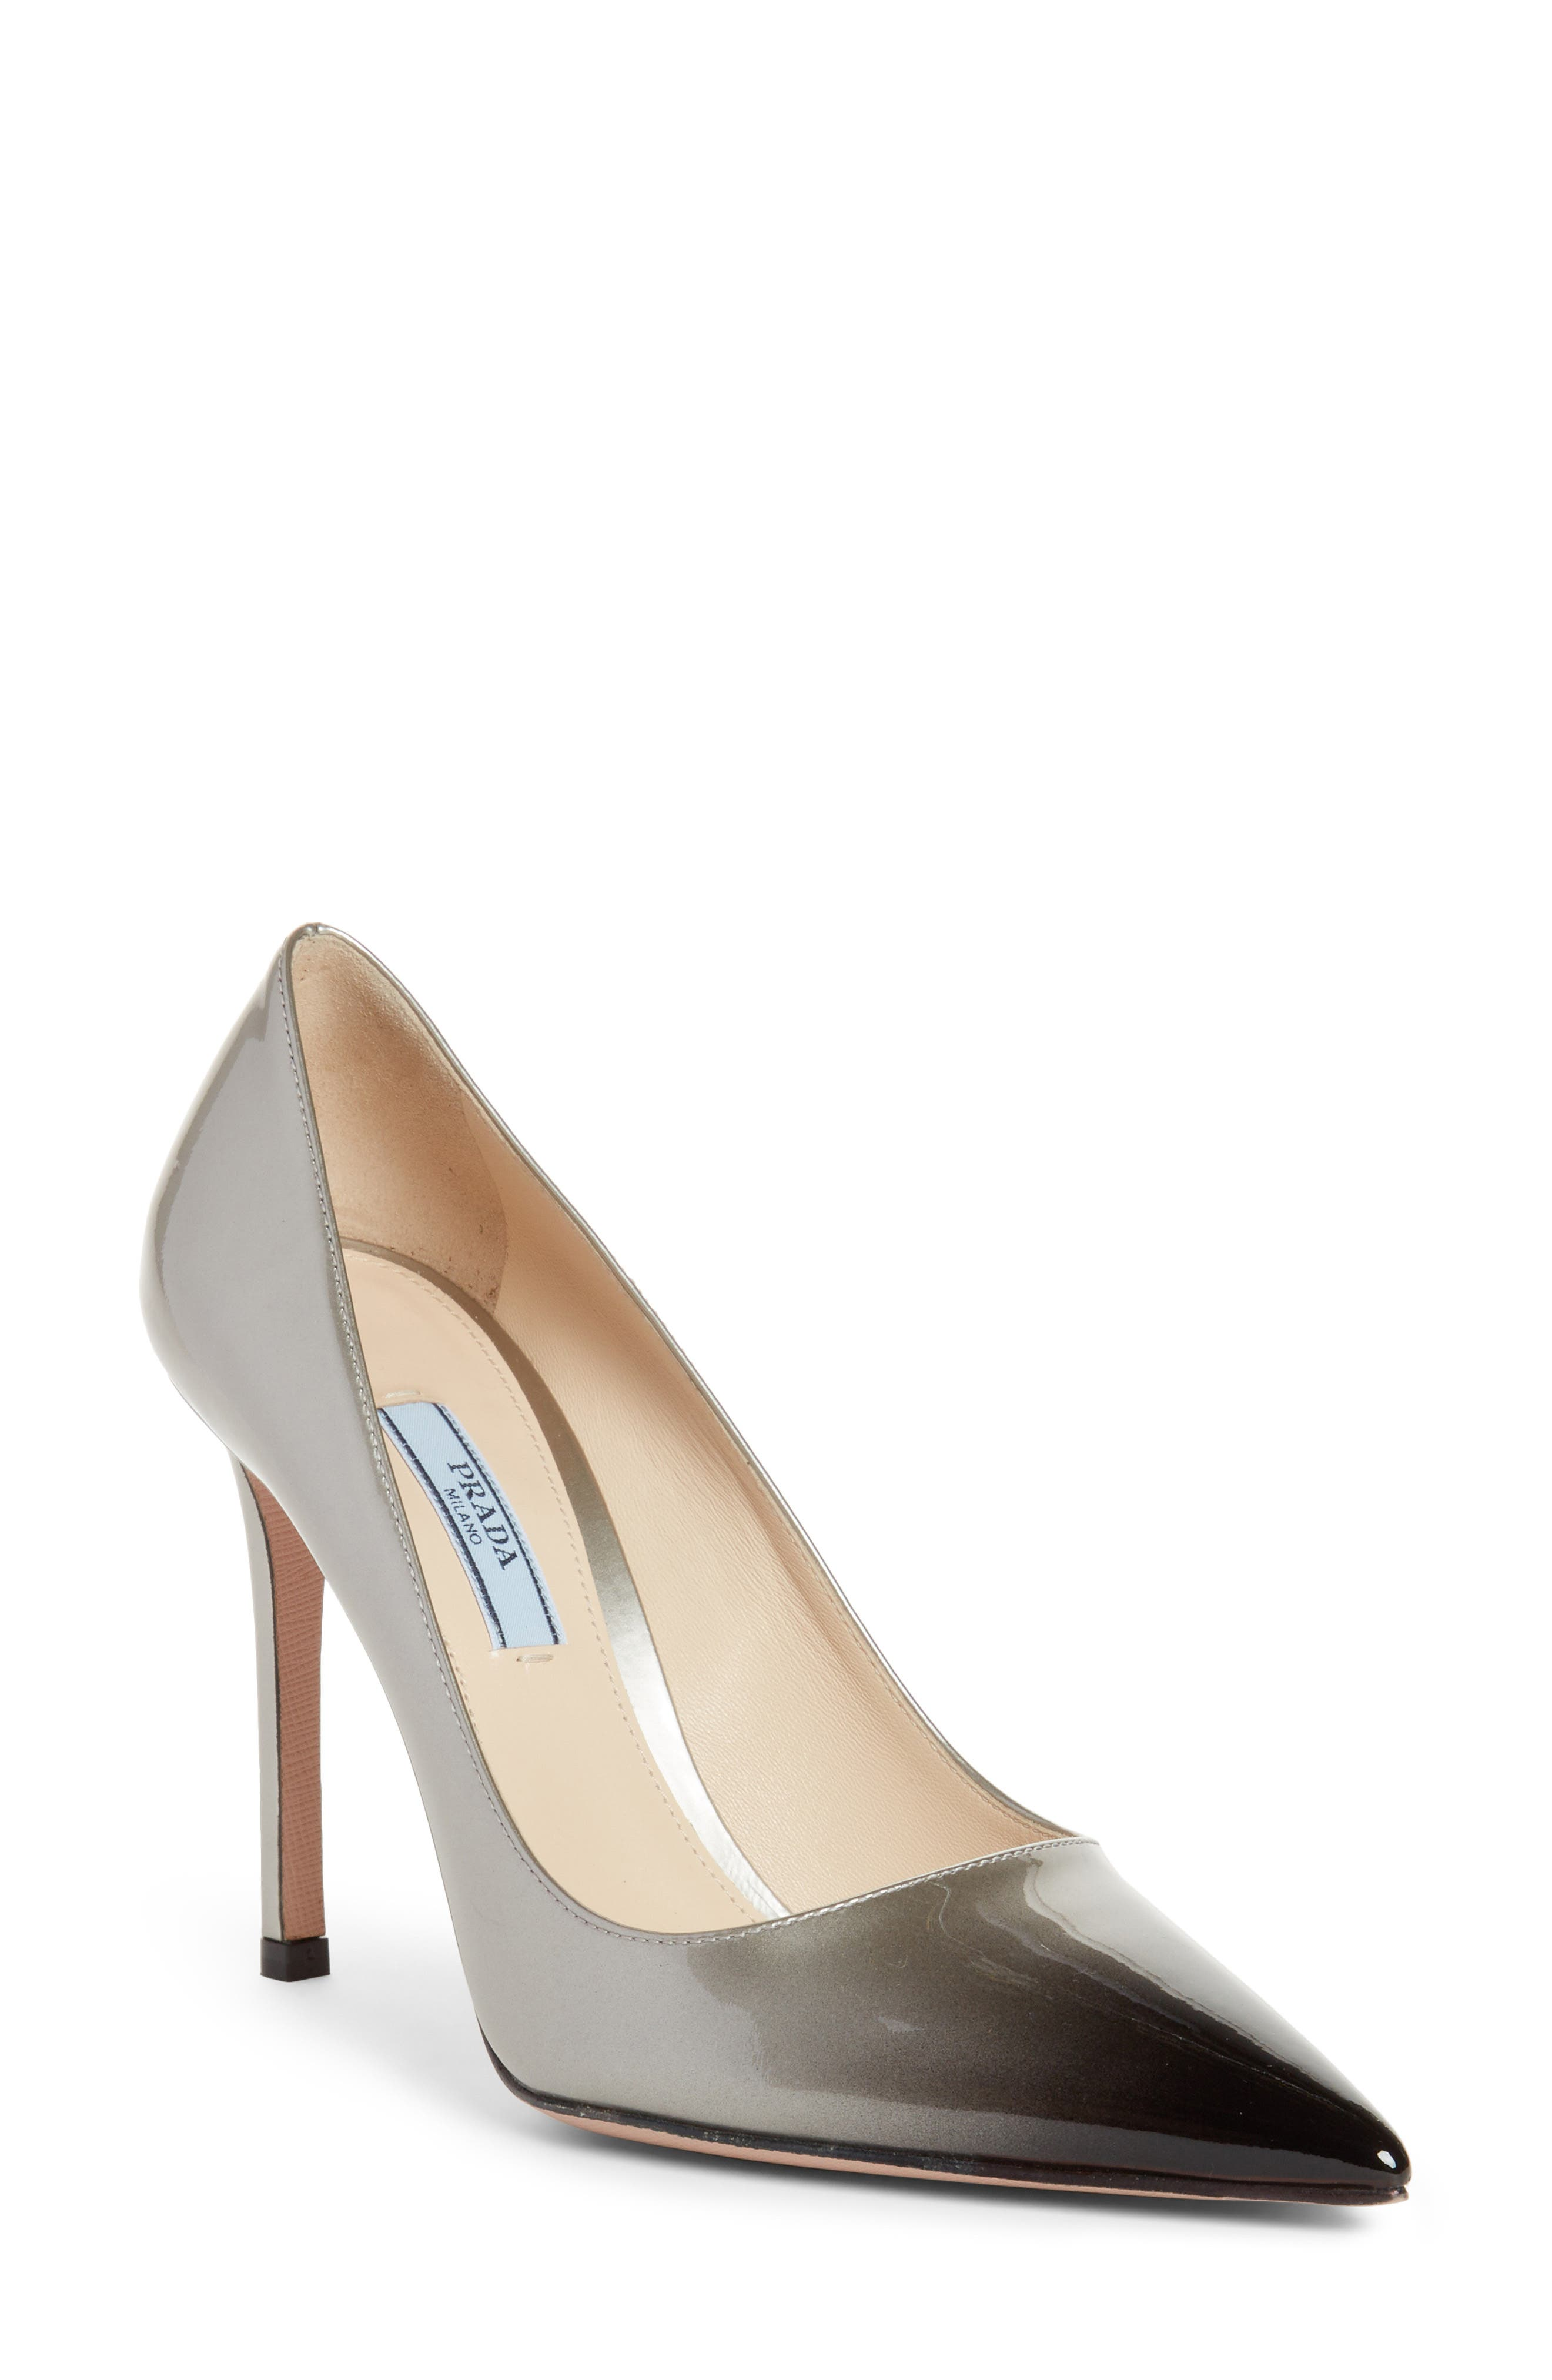 Prada Ombré Pointy Toe Pump (Women)